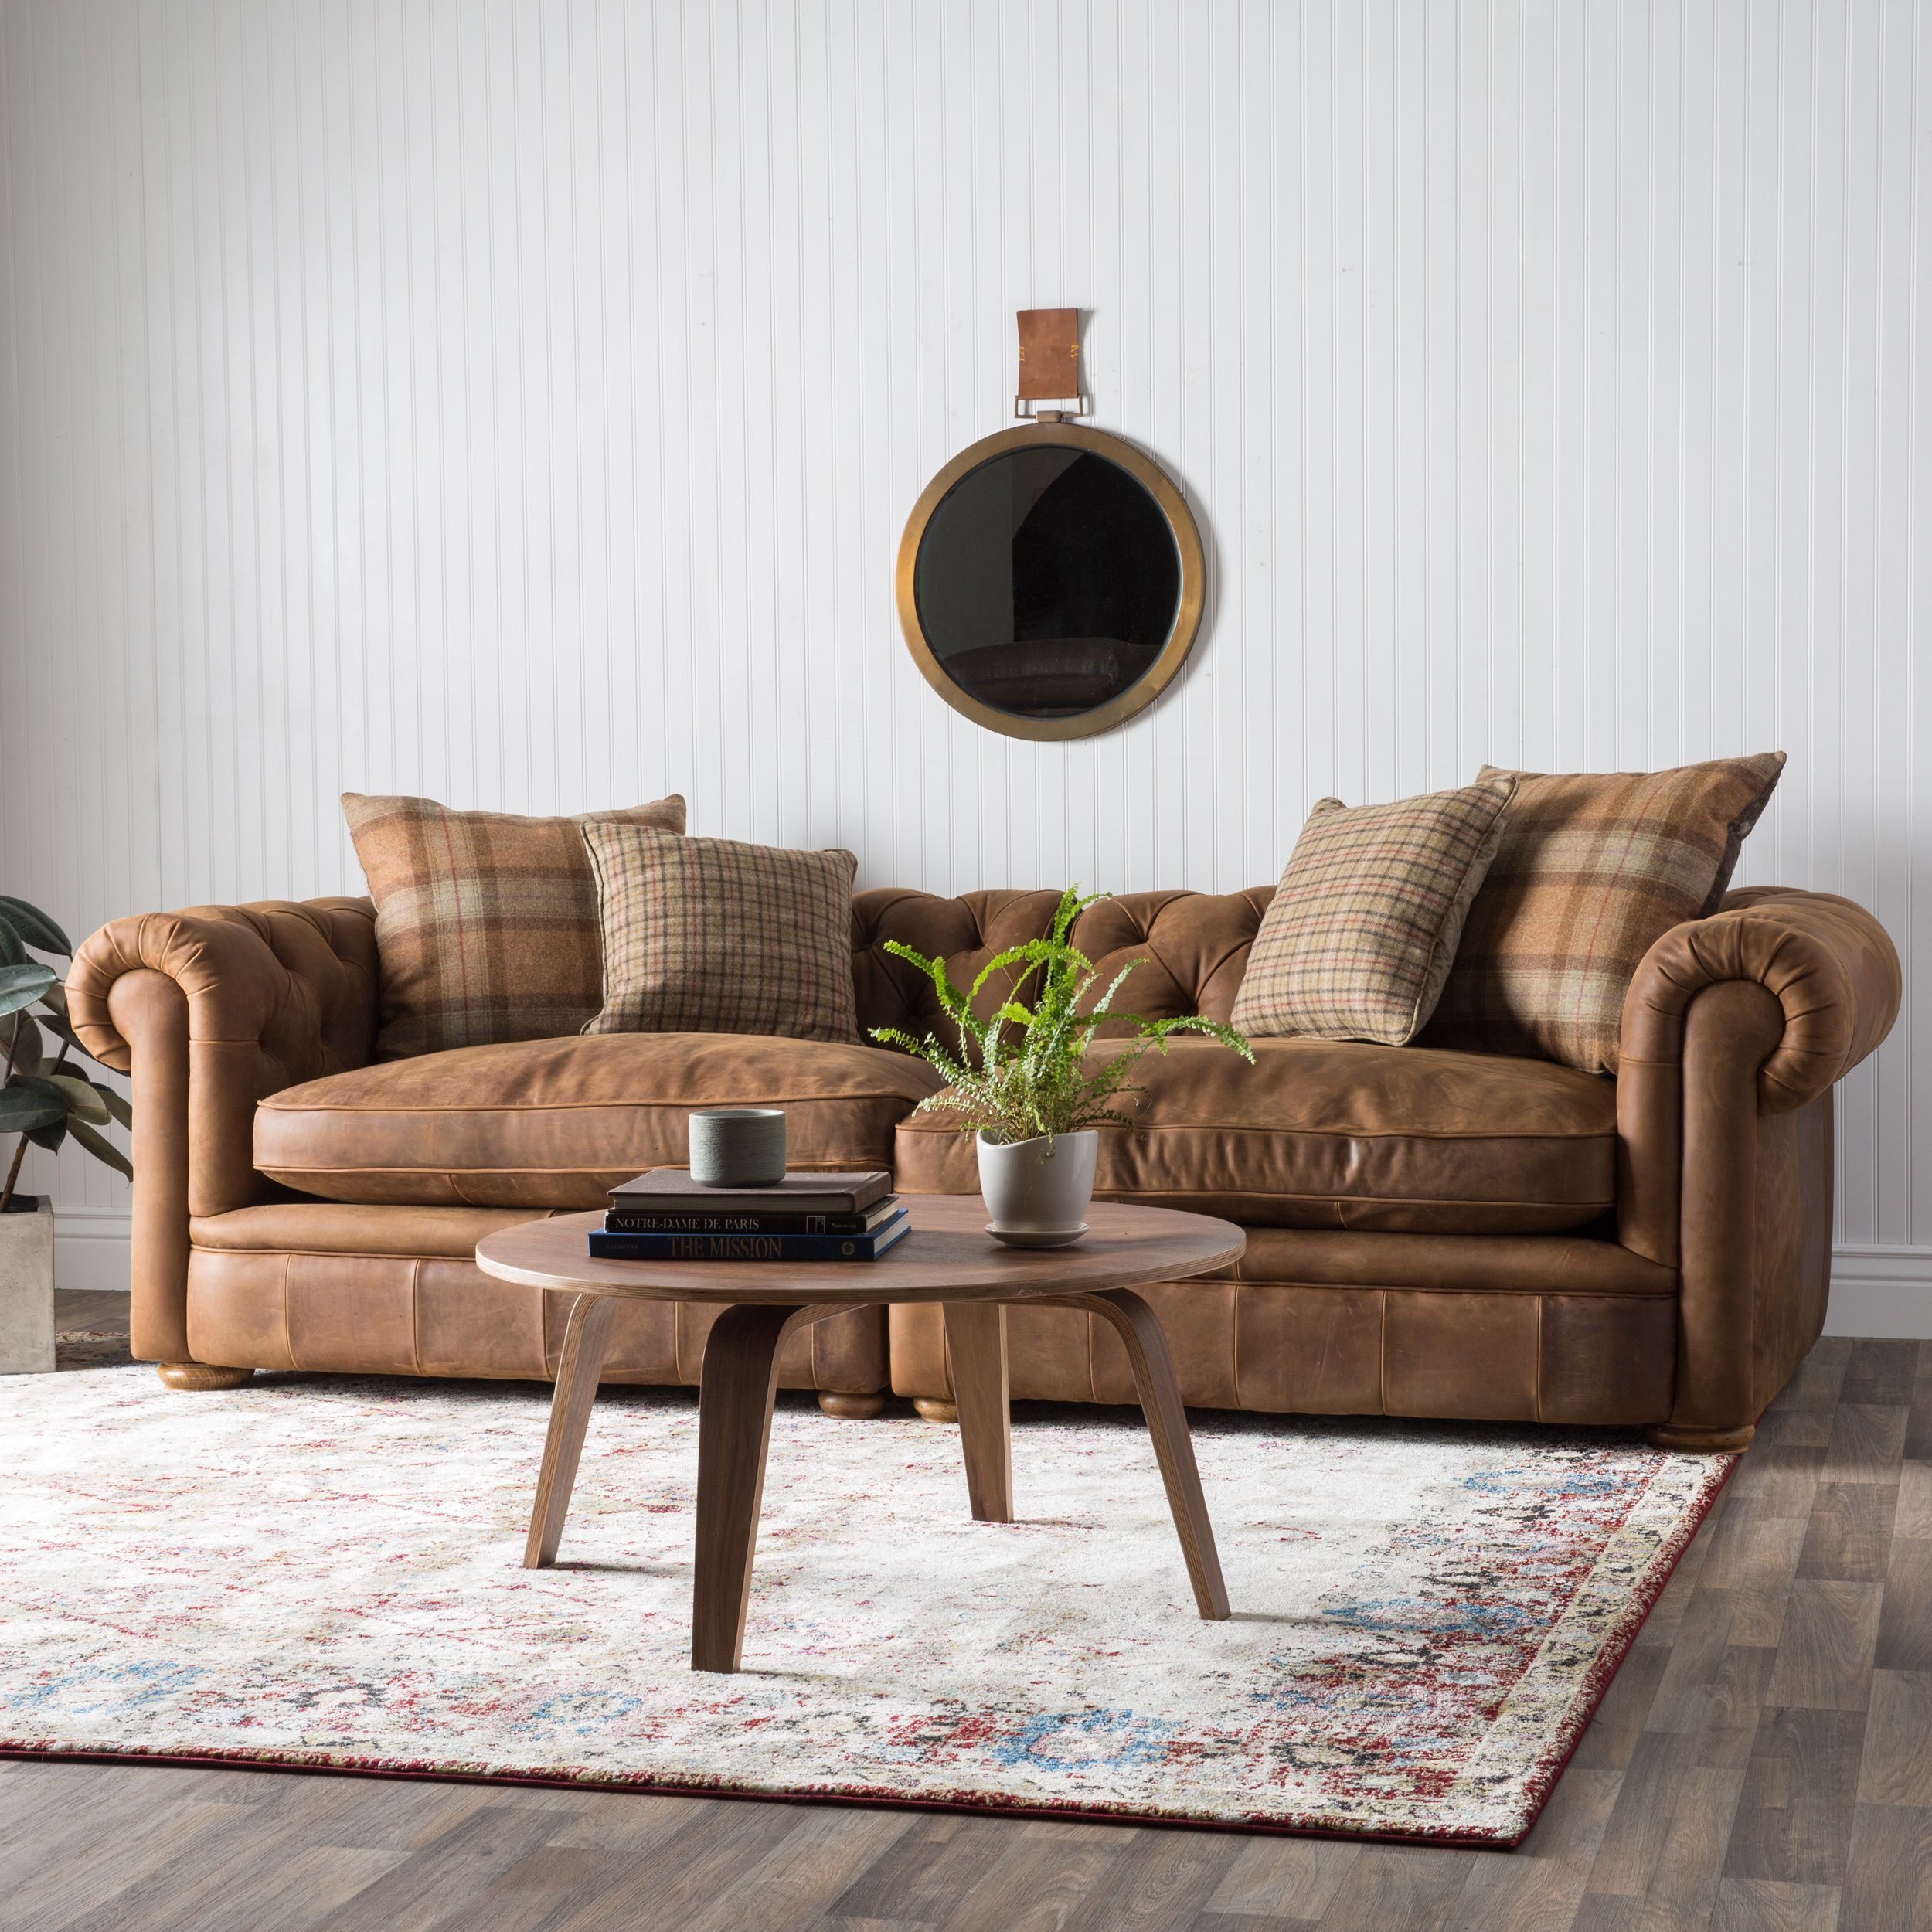 This tufted back grand sofa will complete your home decor with warm tones and a premium kiln dried hardwood frame